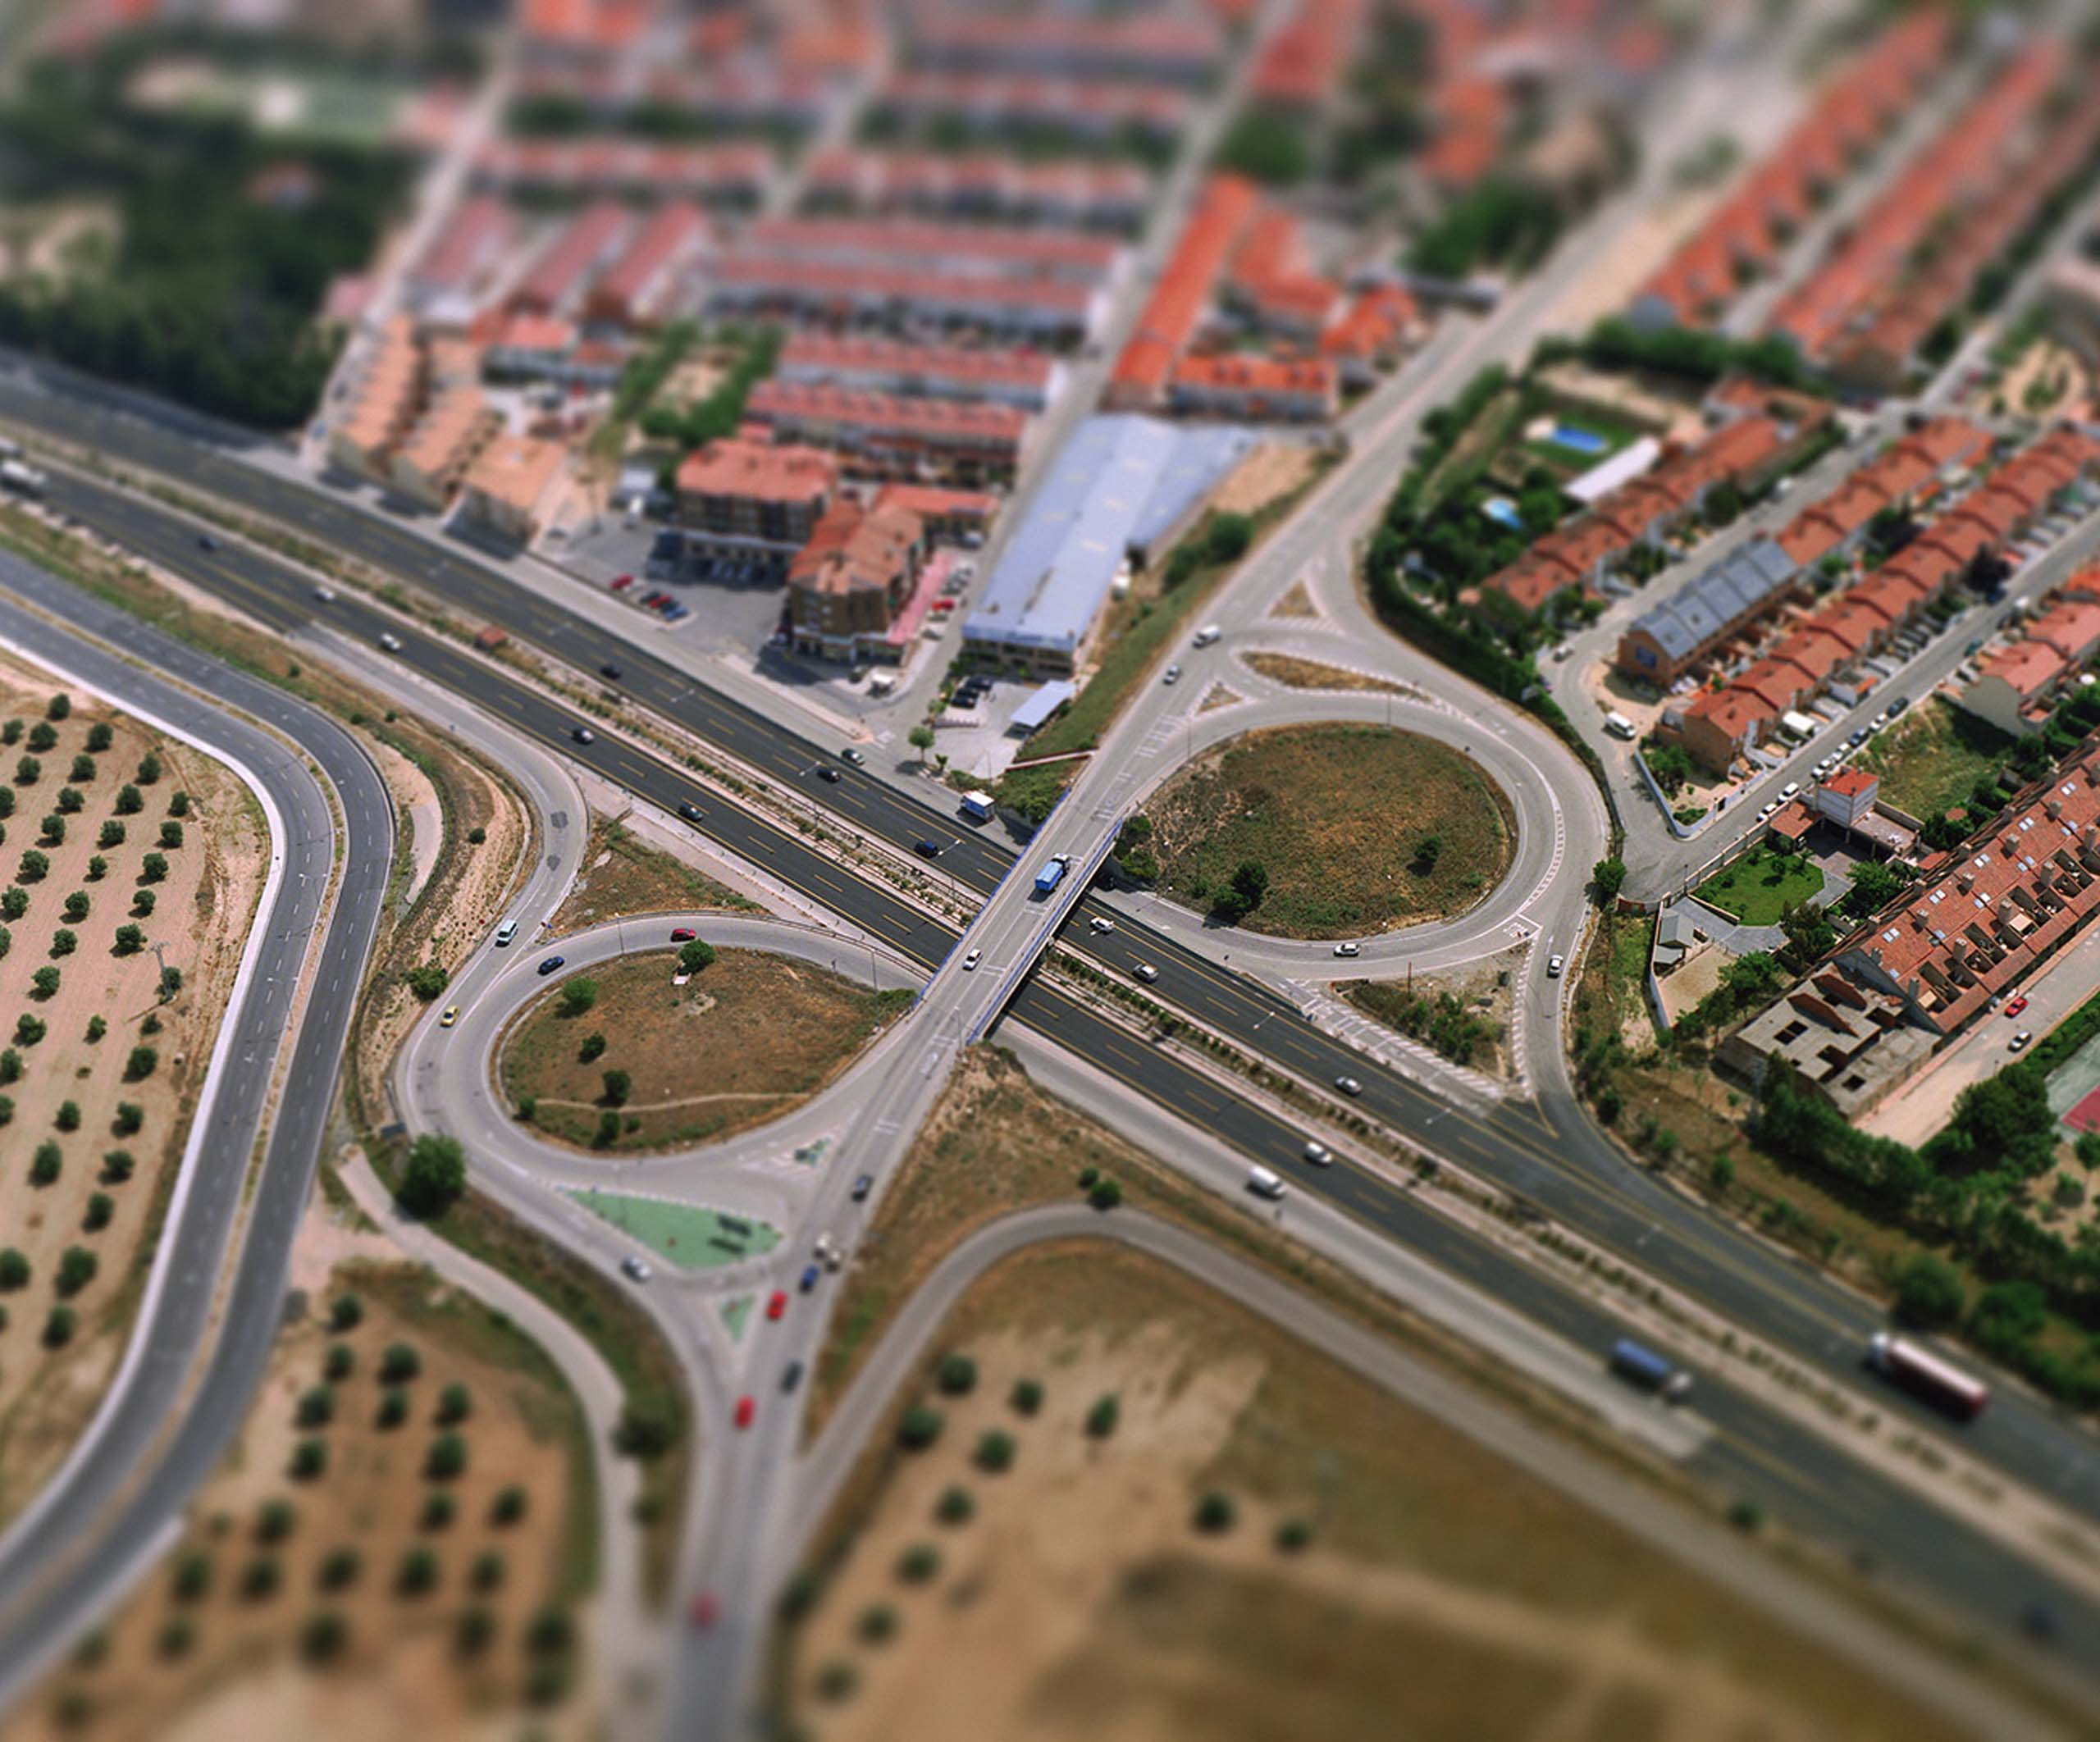 Distribuidor from the series Aerial